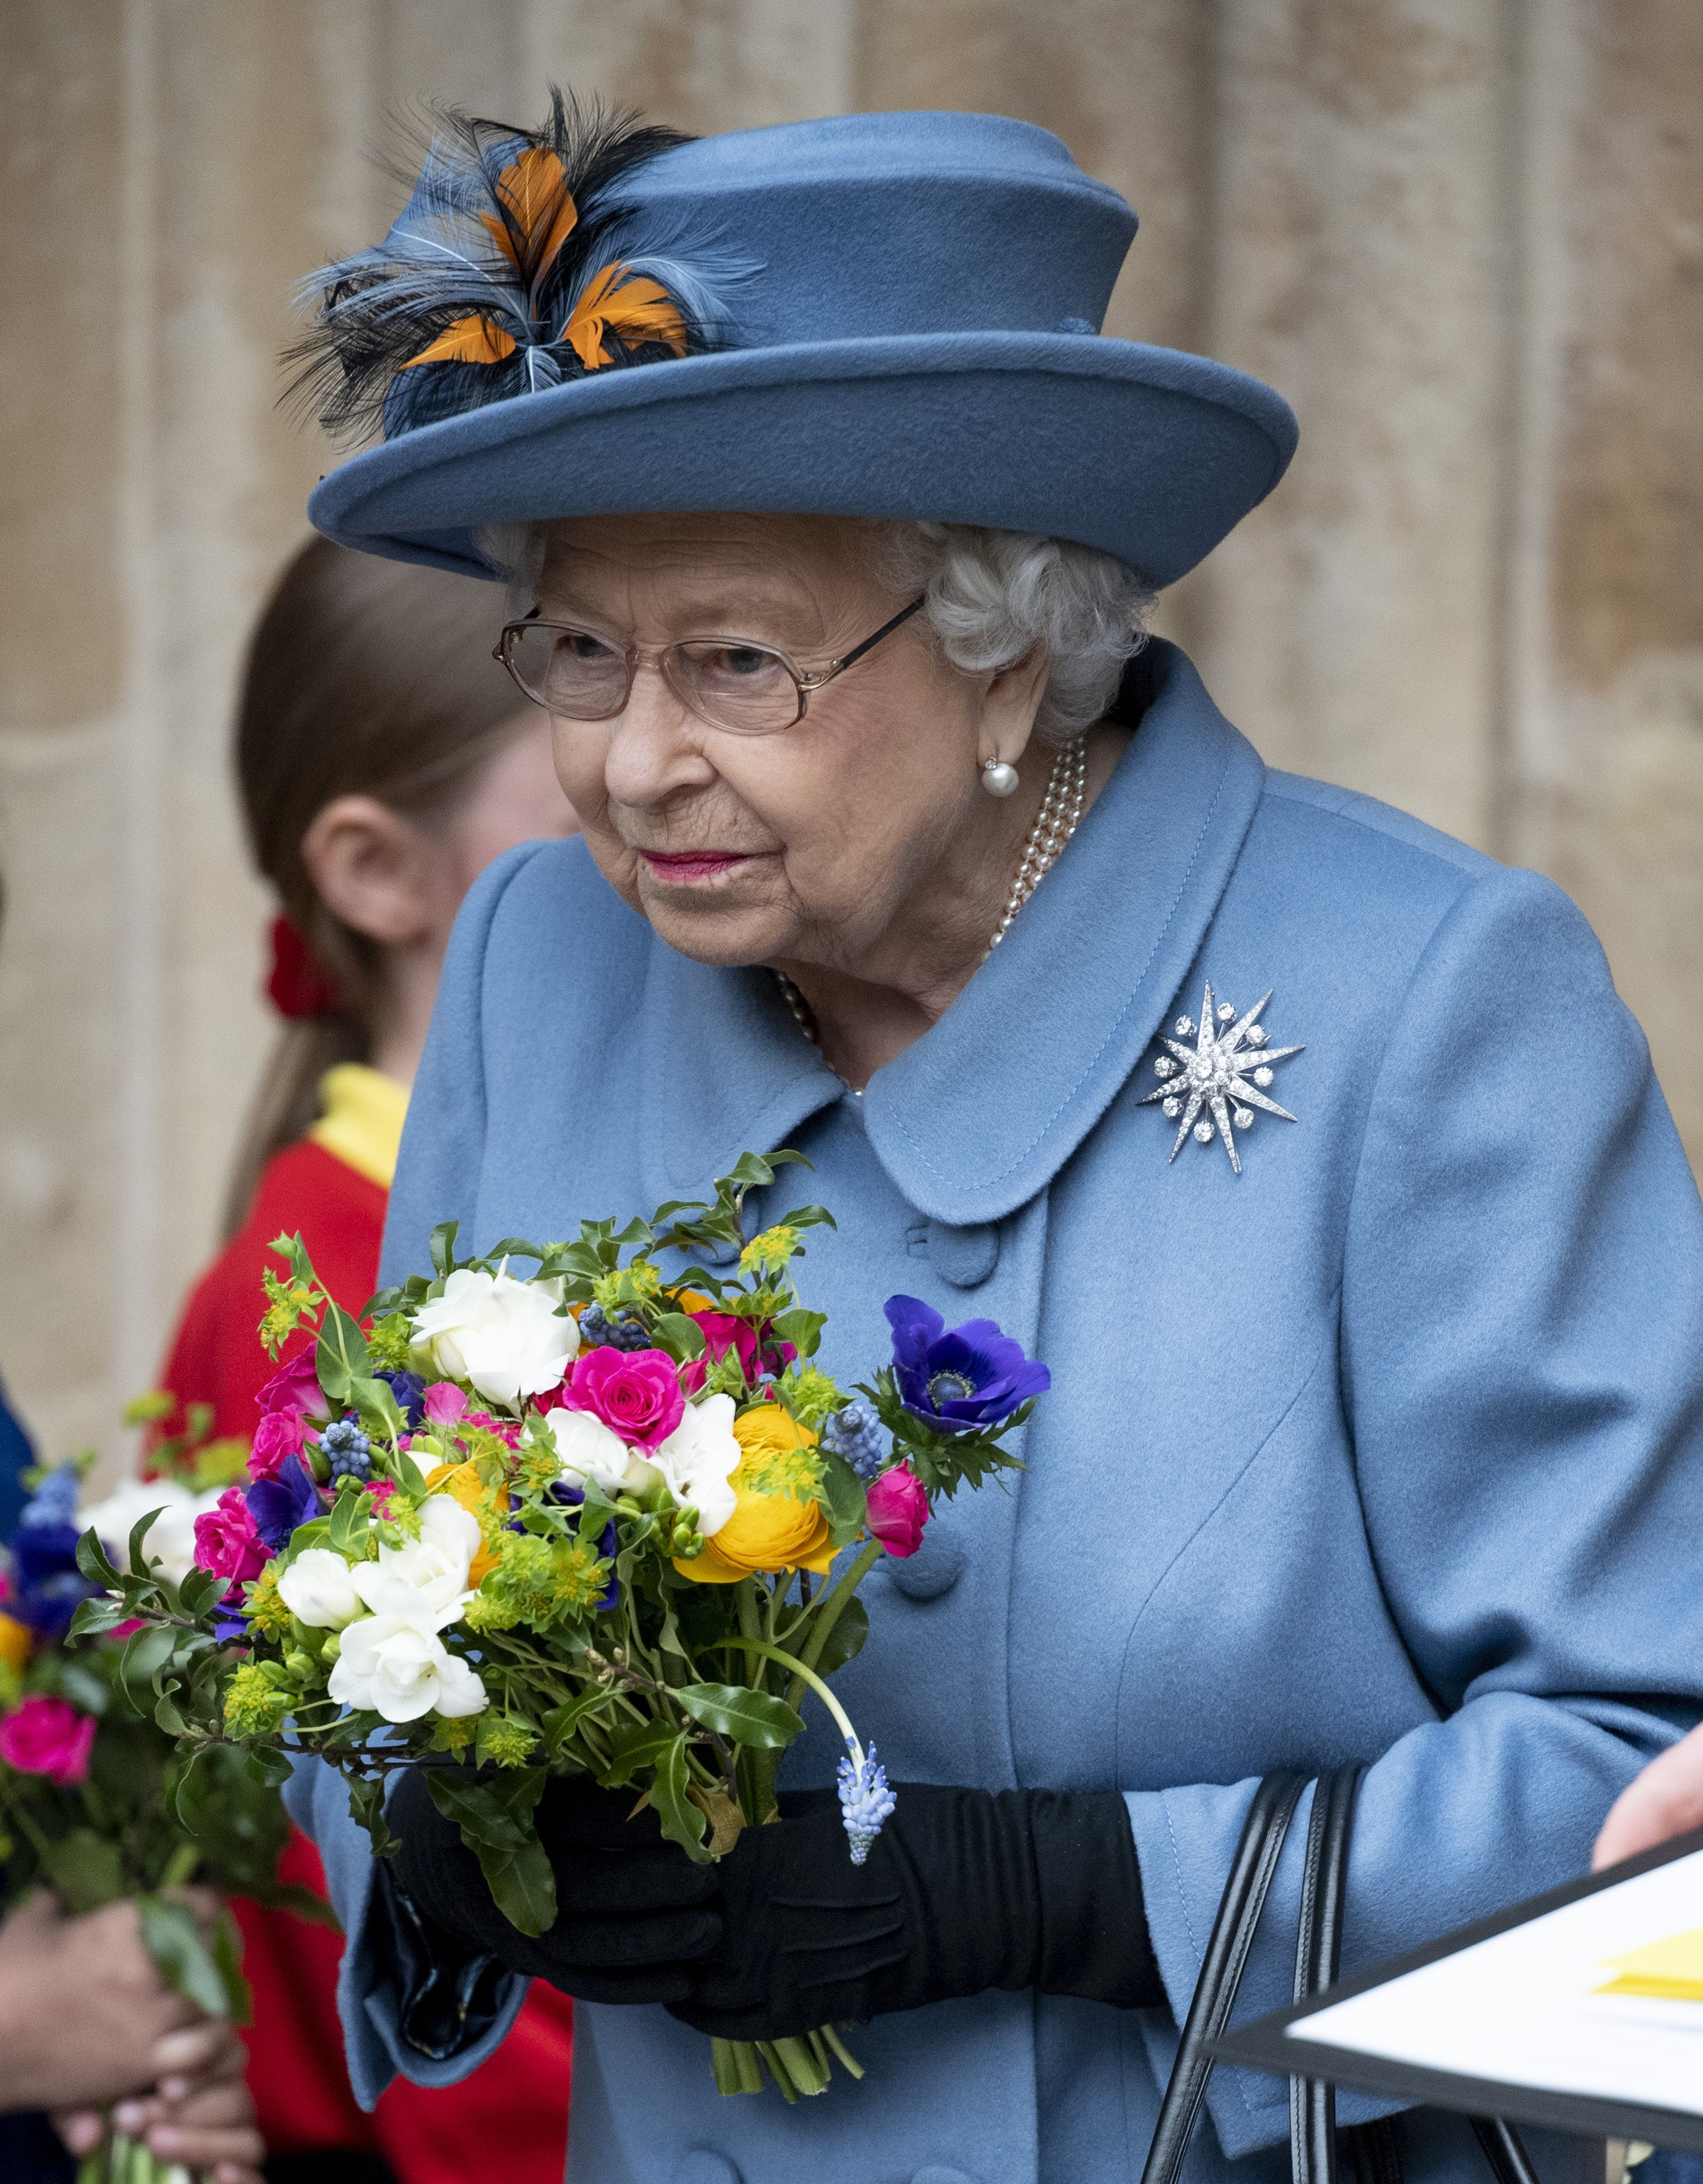 Queen Elizabeth II attends the Commonwealth Day Service 2020 at Westminster Abbey on March 9, 2020, in London, England. | Source: Getty Images.